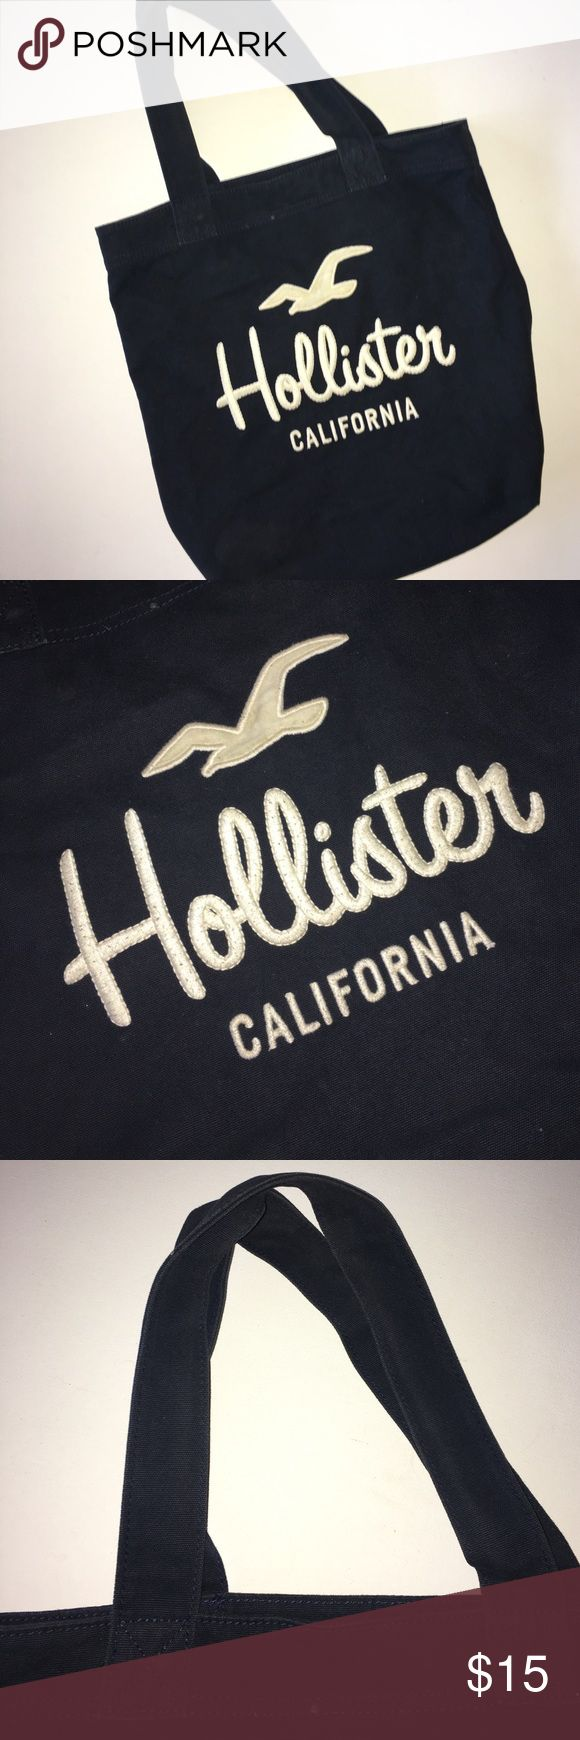 Hollister Tote Bag Stylish dark blue Hollister Tote bag. Use a a school bag, gym bag, overnight bag. In great condition! Hollister Bags Totes